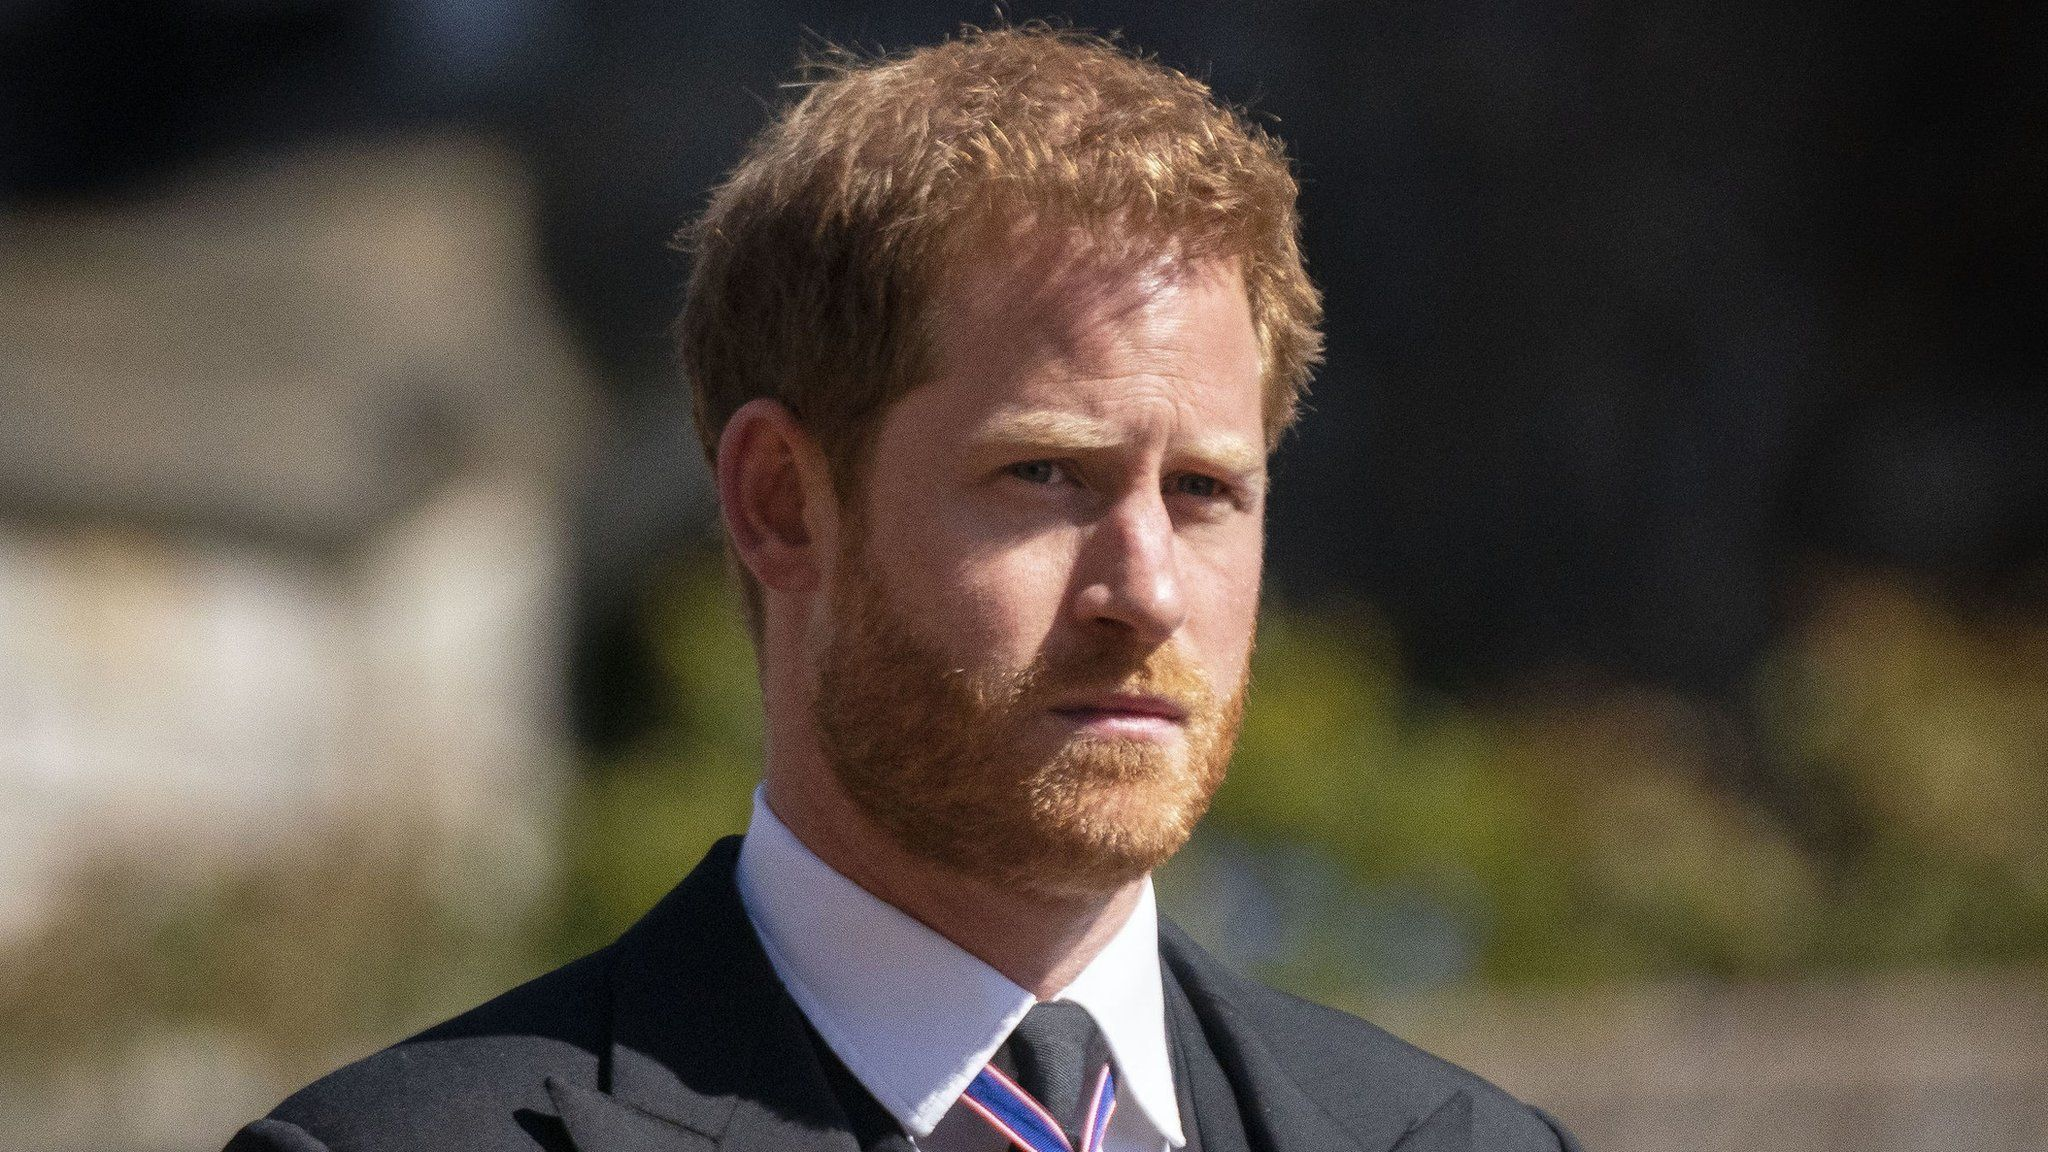 Prince Harry promises to share 'highs and lows' in memoir thumbnail